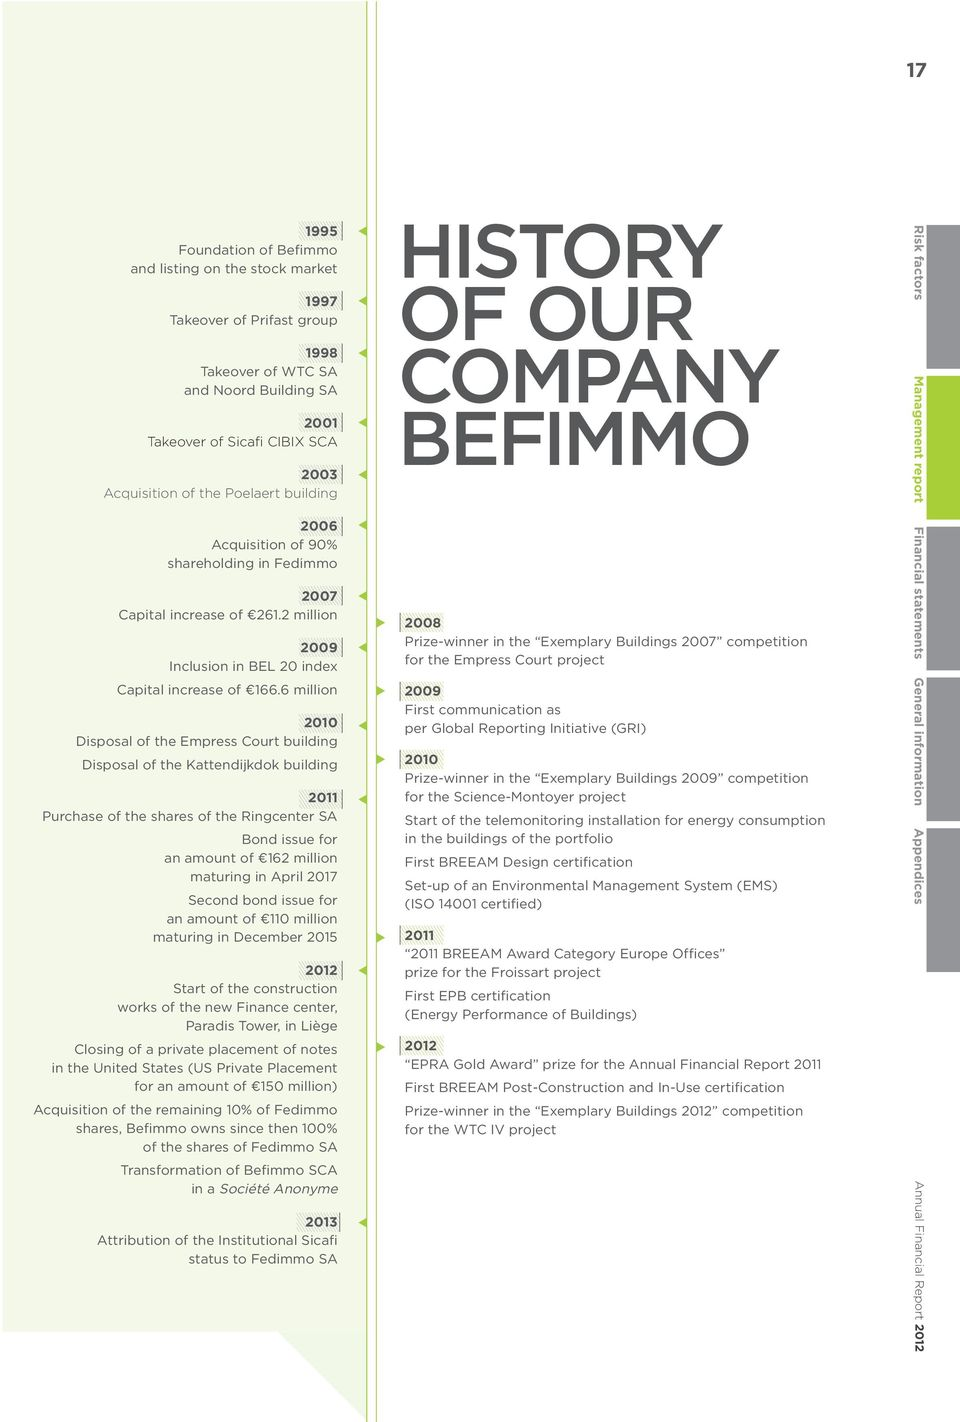 2 million 2009 Inclusion in BEL 20 index HISTORY OF OUR COMPANY BEFIMMO 2008 Prize-winner in the Exemplary Buildings 2007 competition for the Empress Court project Risk factors Management report